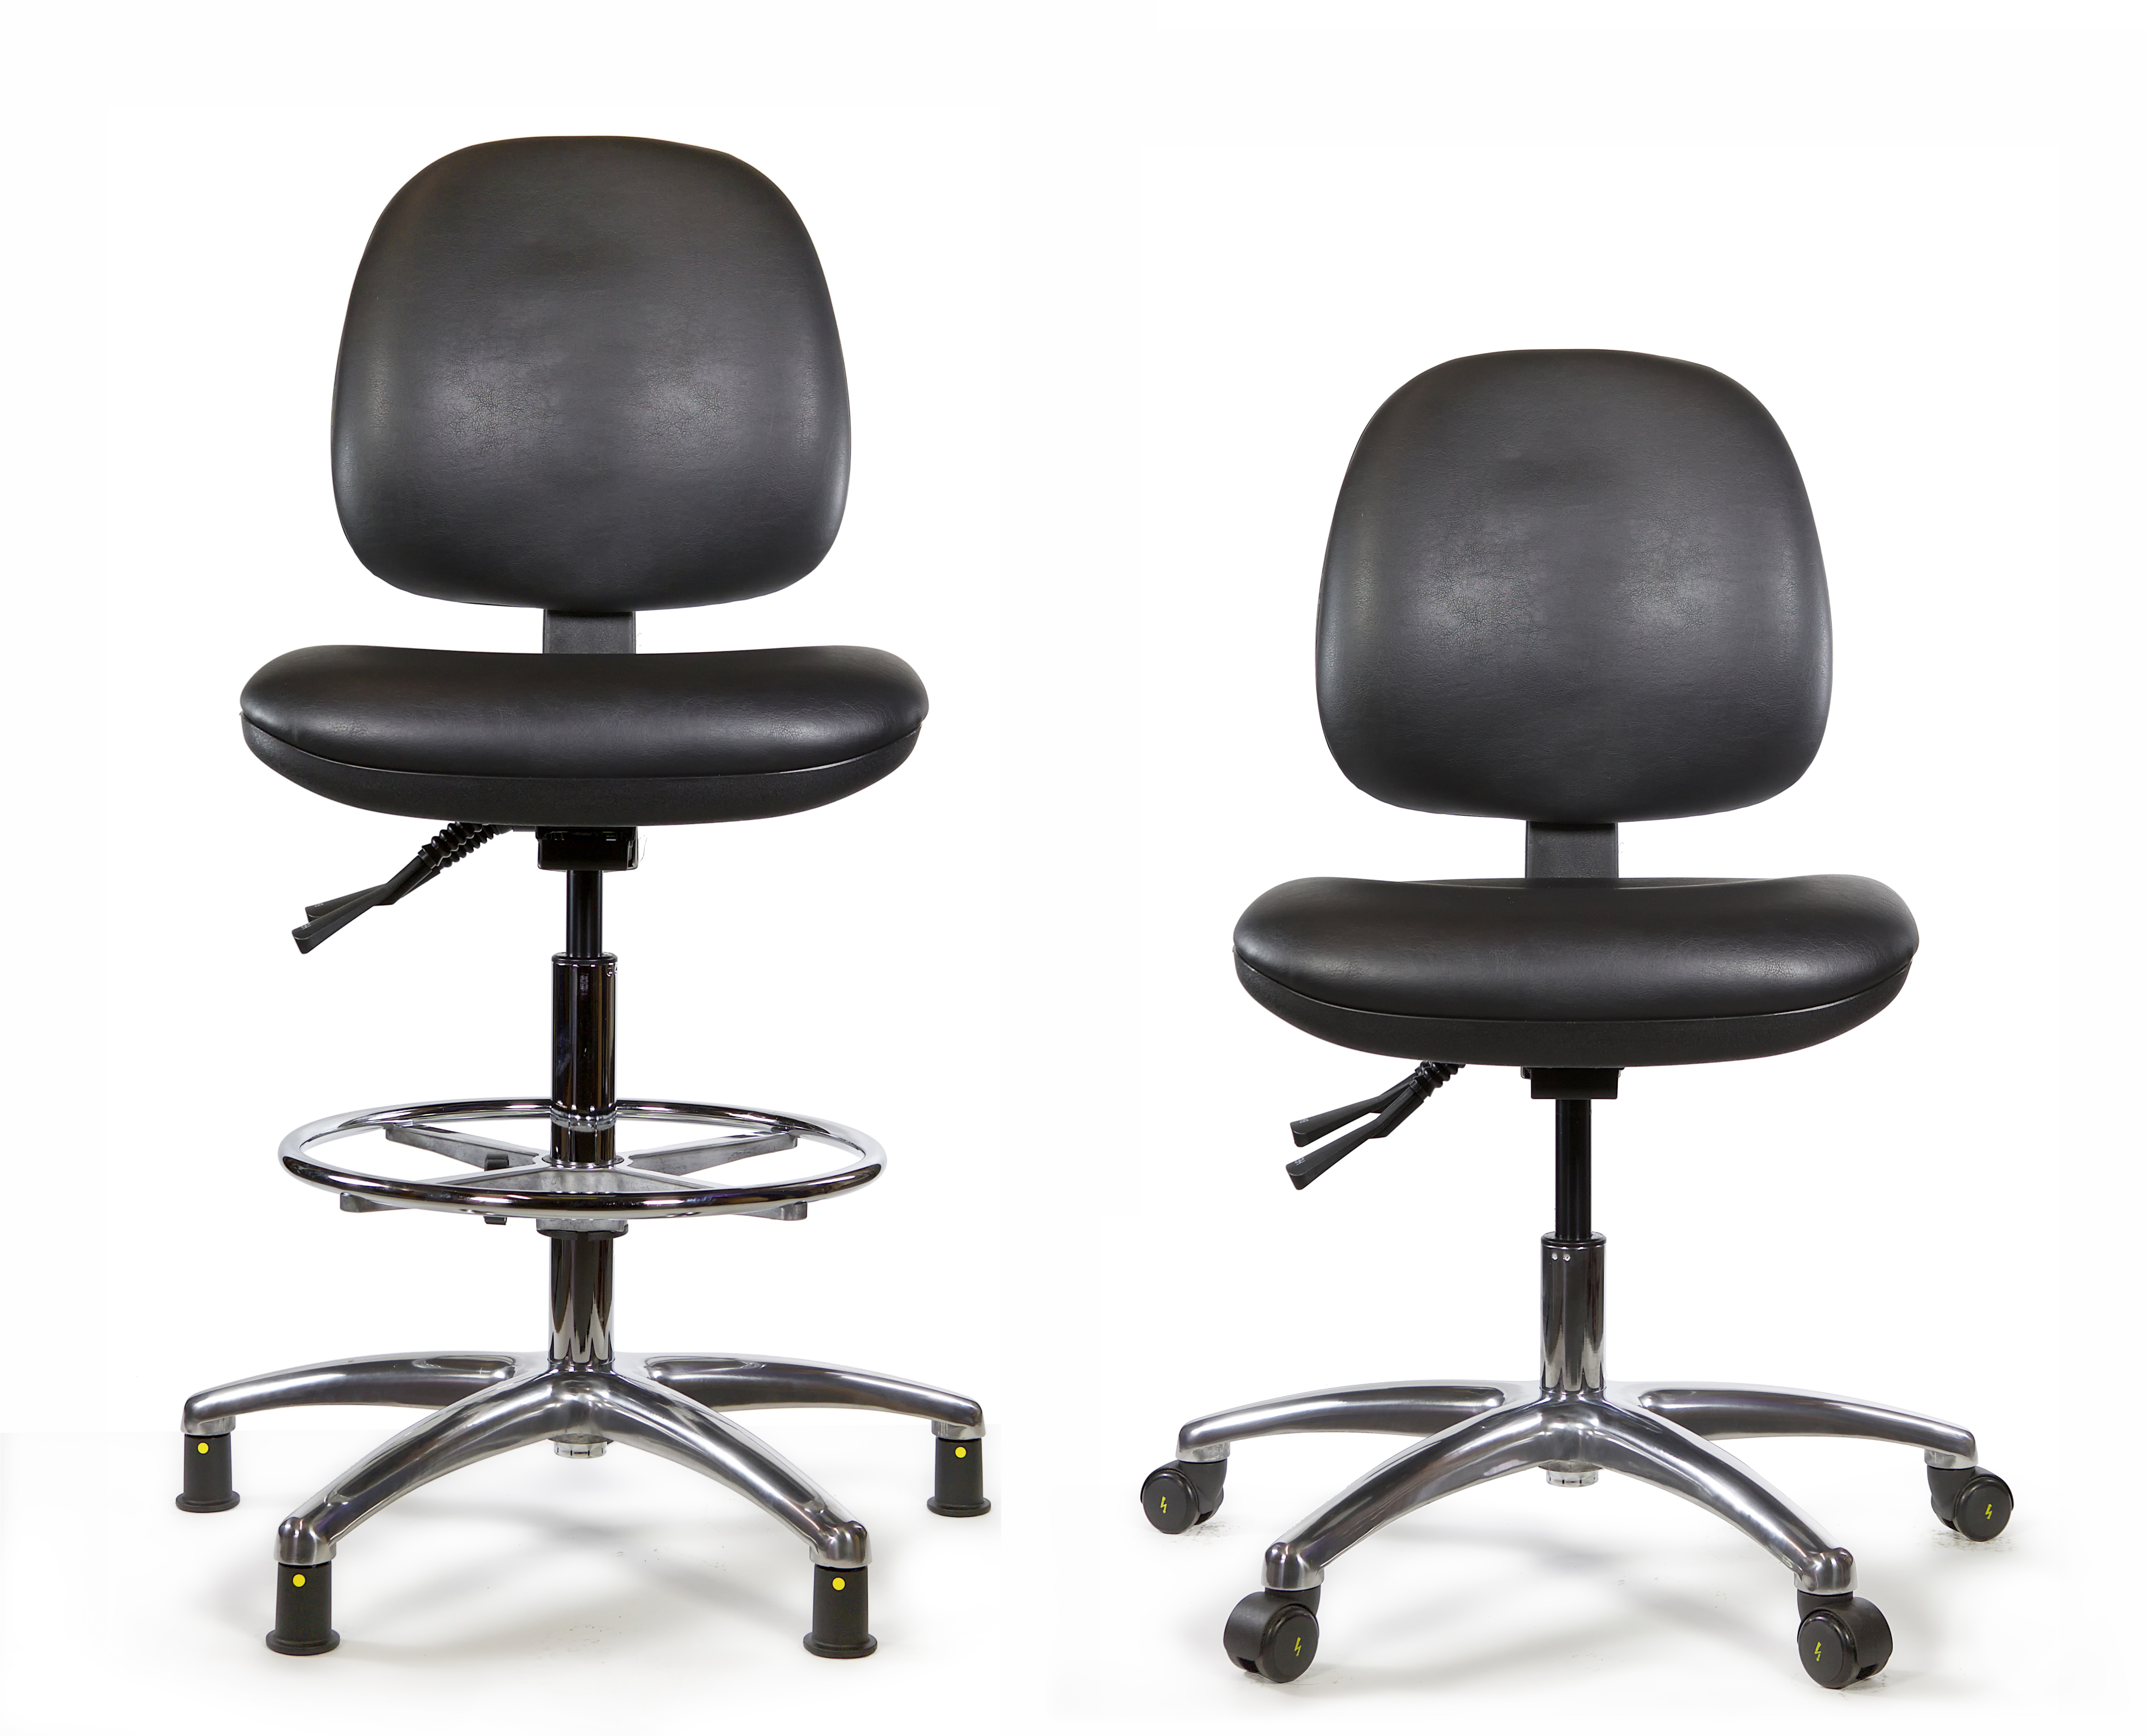 C Tech Vinyl Esd Cleanroom Chair Evolve Healthcare Products